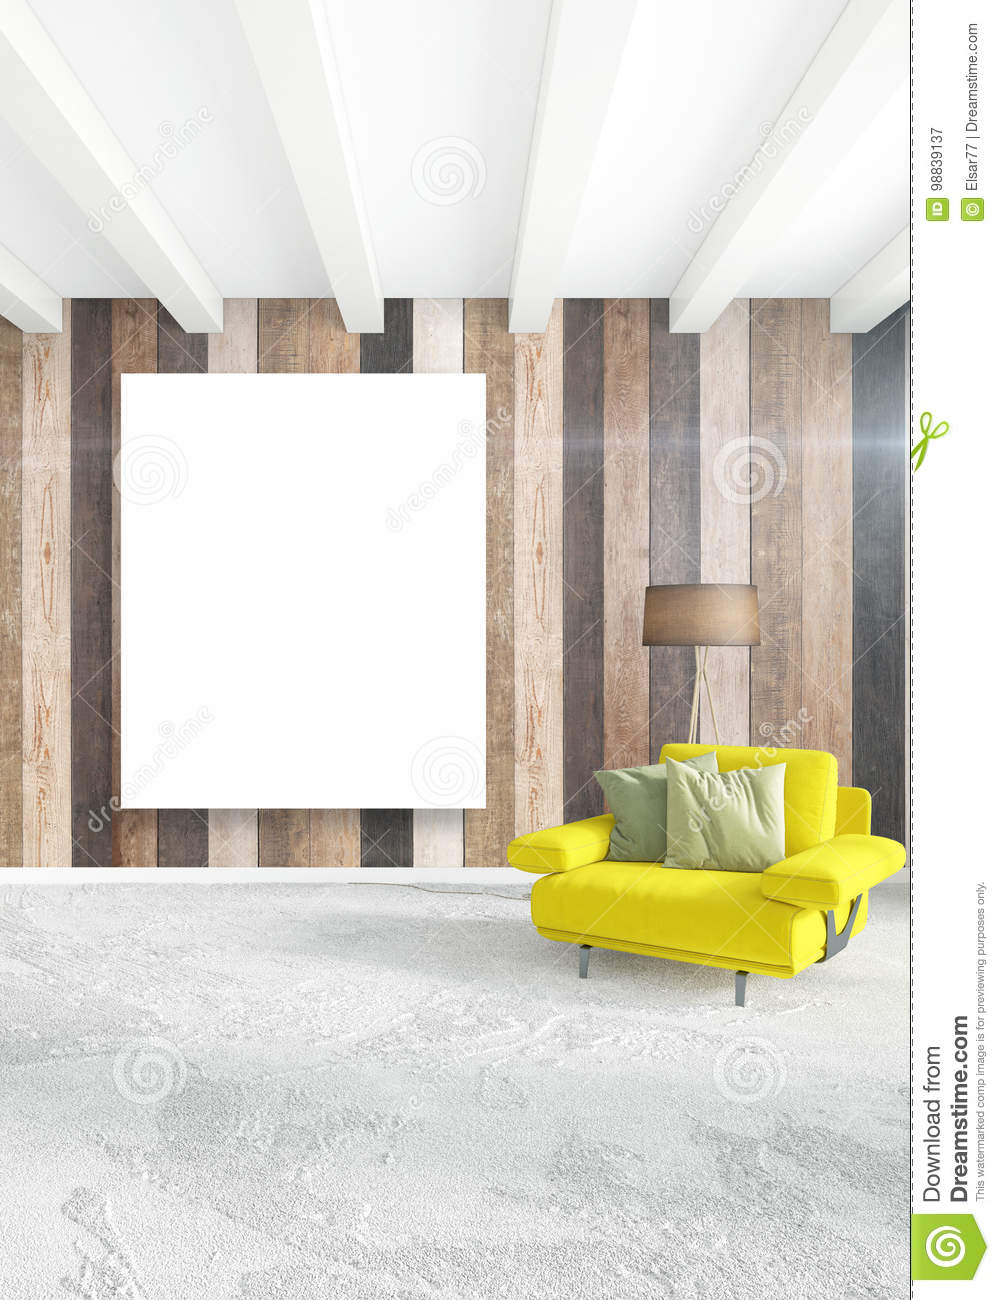 minimal sofa design sofaco cote d ivoire bedroom interior wood wall yellow and copyspace into an empty frame